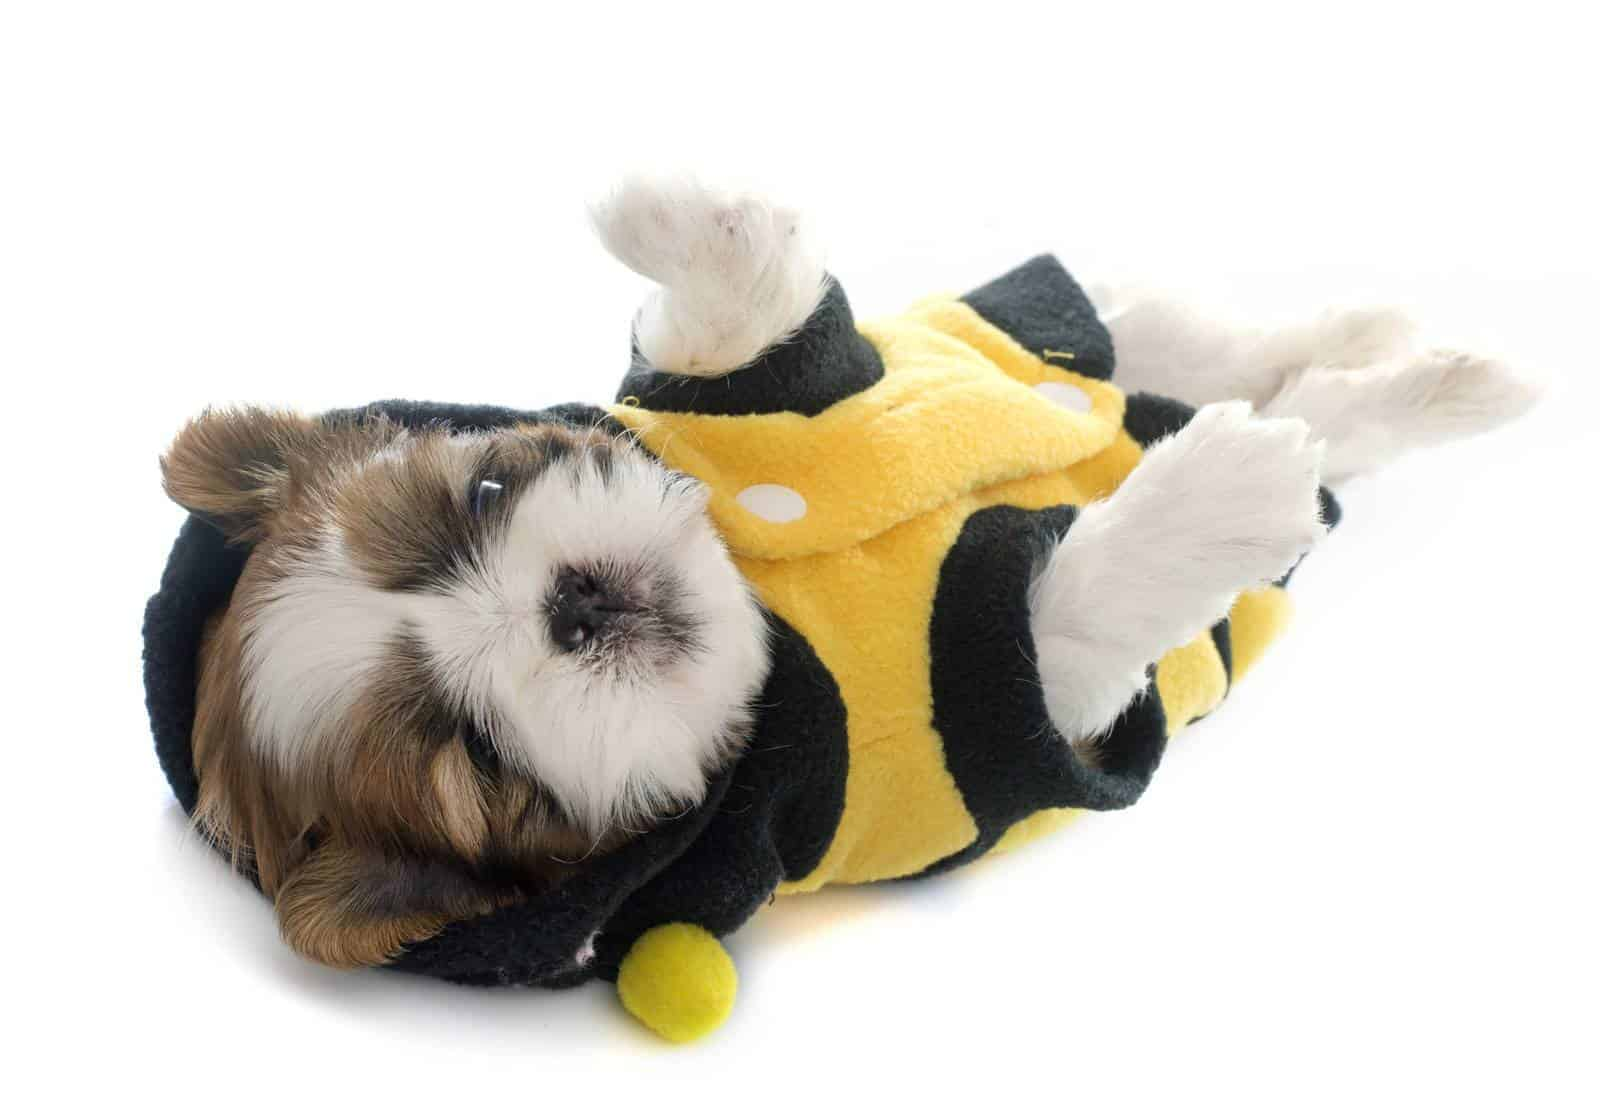 Dogs And Beeswax: What You Need To Know